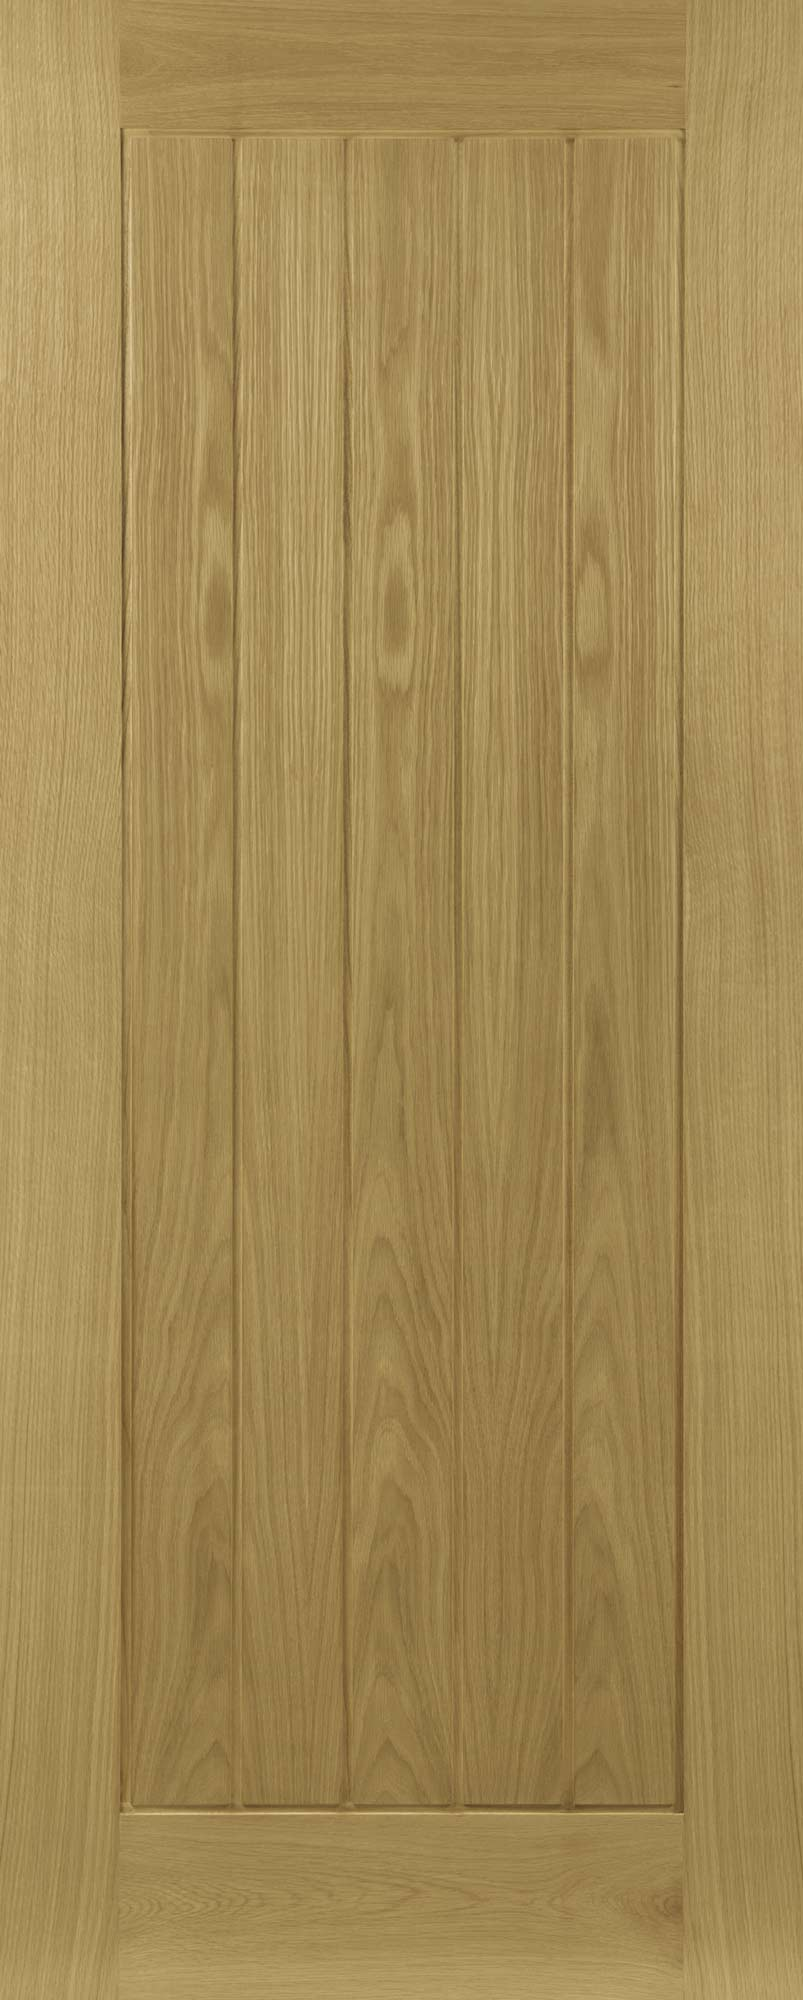 deanta pre finished oak ely door. Black Bedroom Furniture Sets. Home Design Ideas